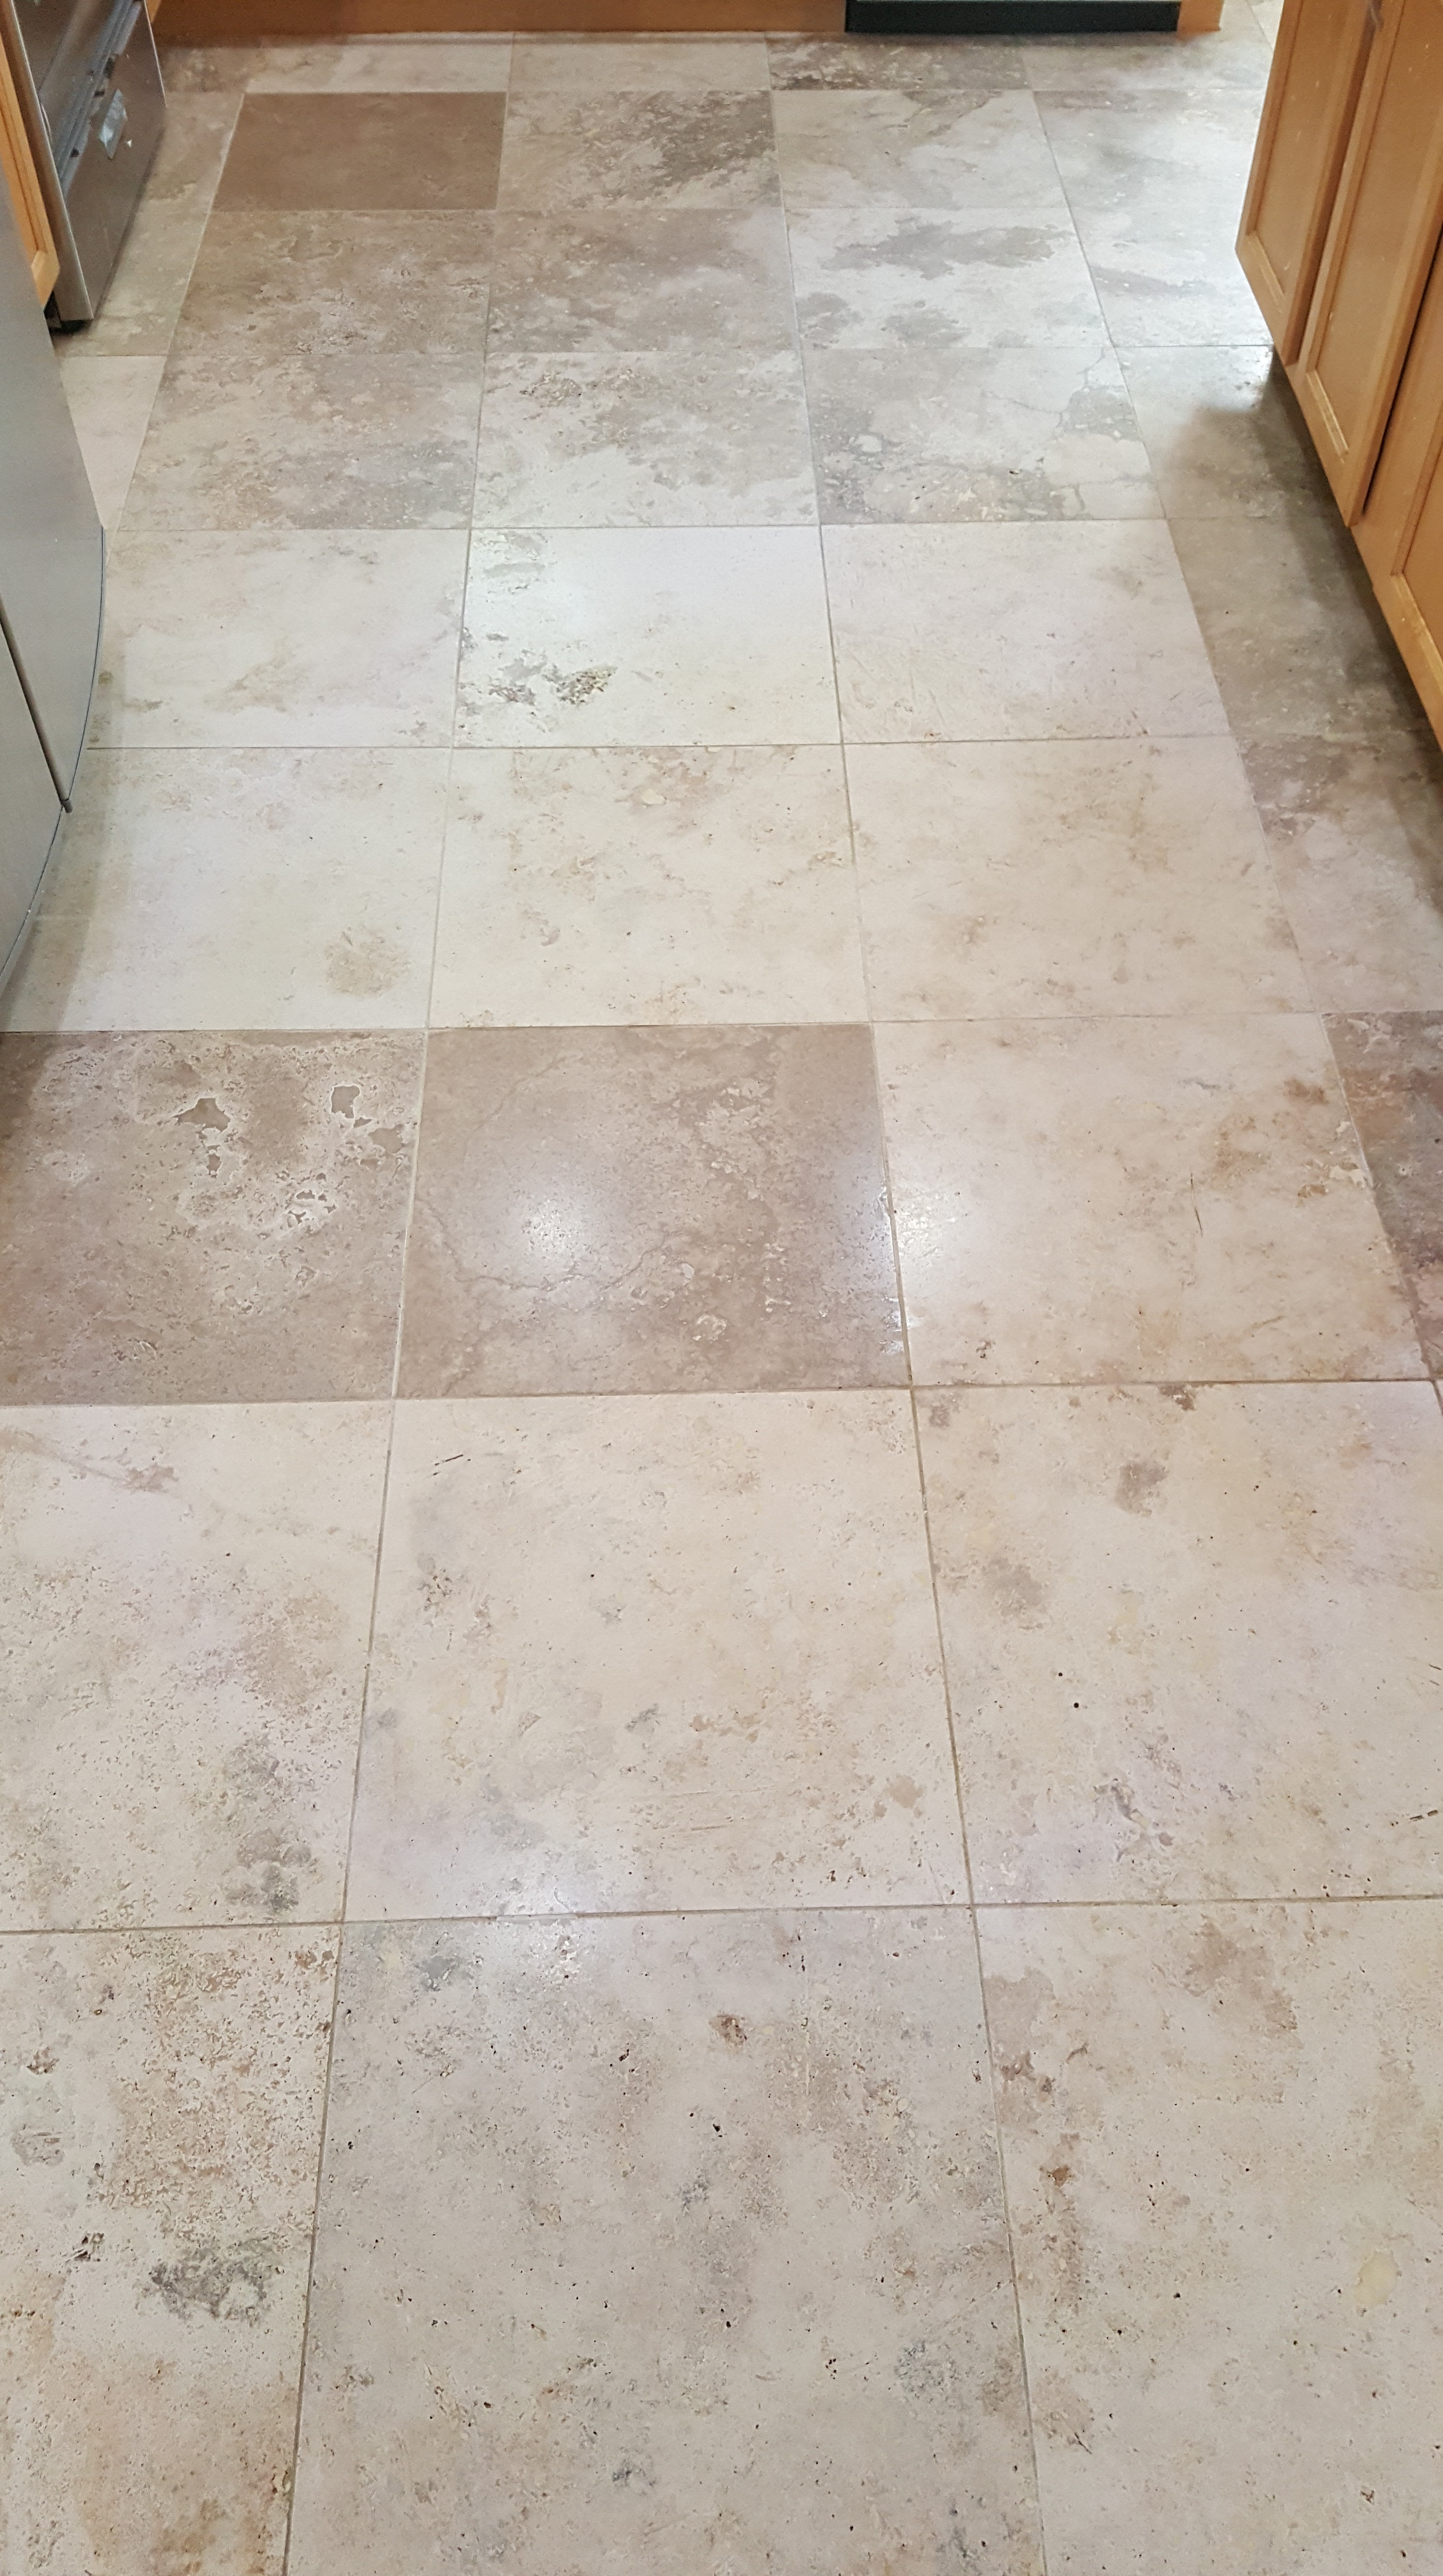 Elite bringing you peace of mind so on your labor day relax and save your valuable time grout cleaning repair and sealing are my labor of love i would be happy to help you out dailygadgetfo Choice Image